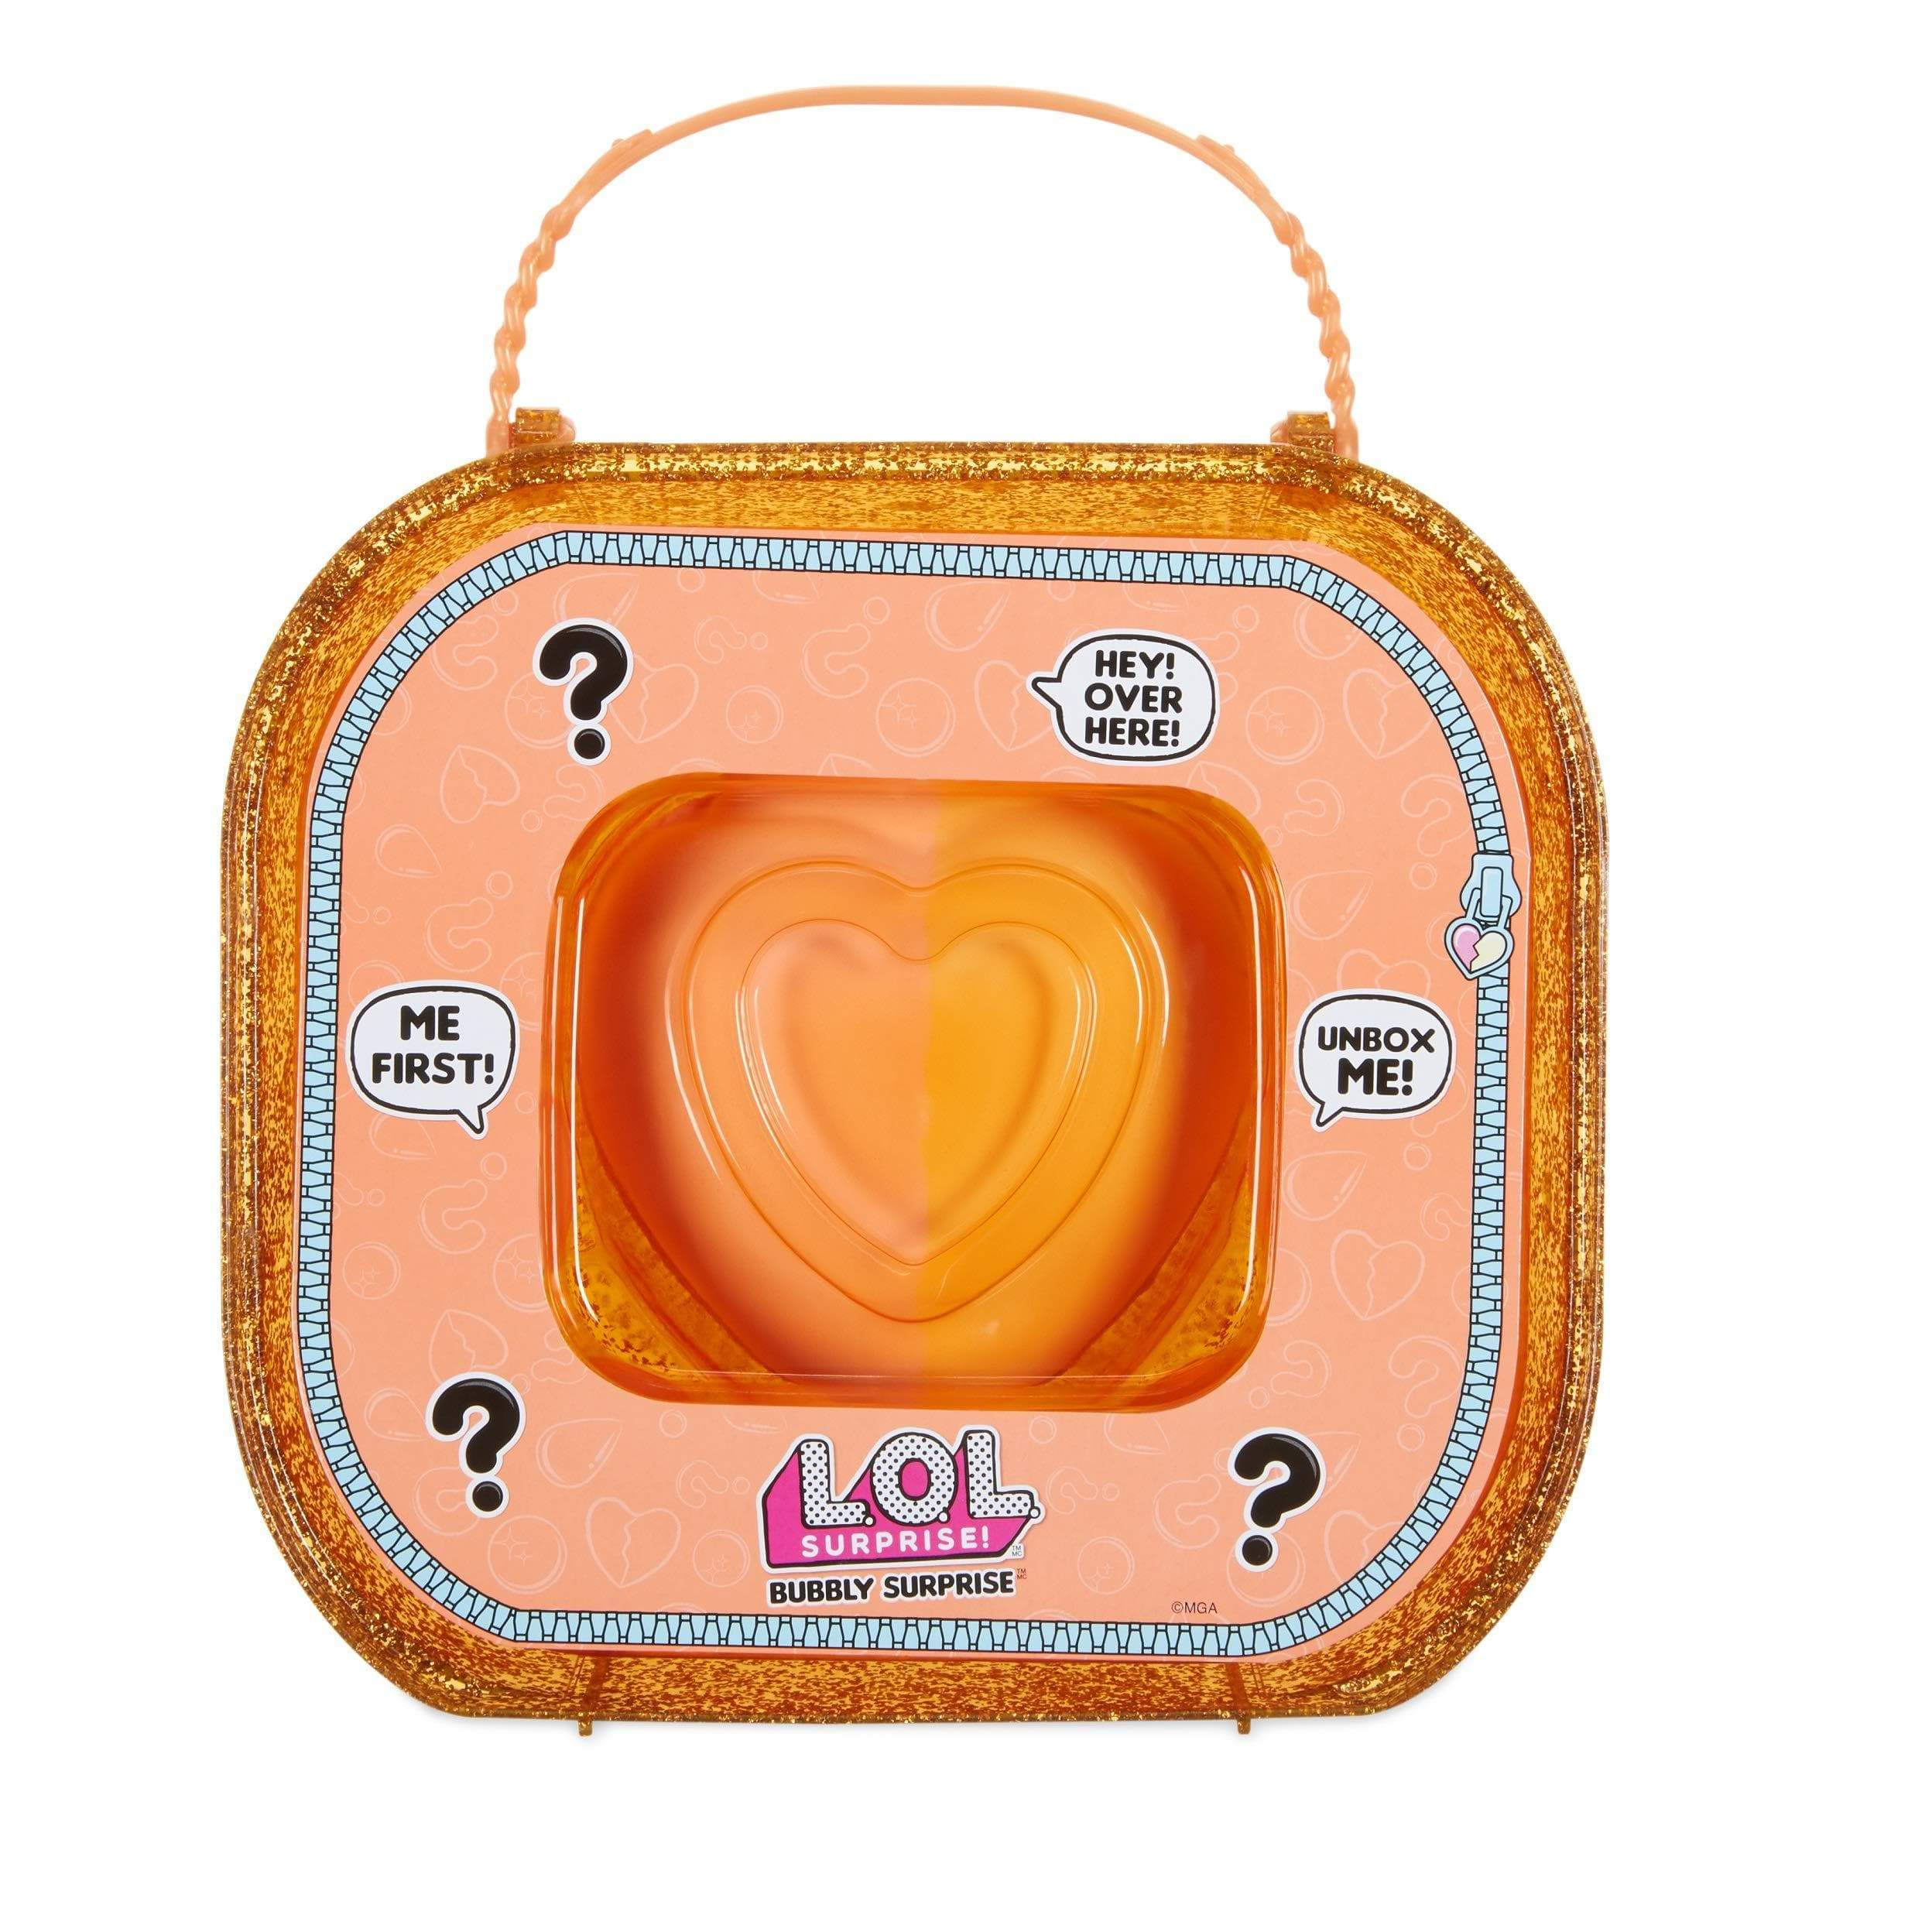 AmazonMGA Entertainment L.O.L. Surprise! Bubbly Surprise Orange - Muñecas (Multicolor, Femenino, Chica, Mascota de muñeca) - mamyka- moda infantil